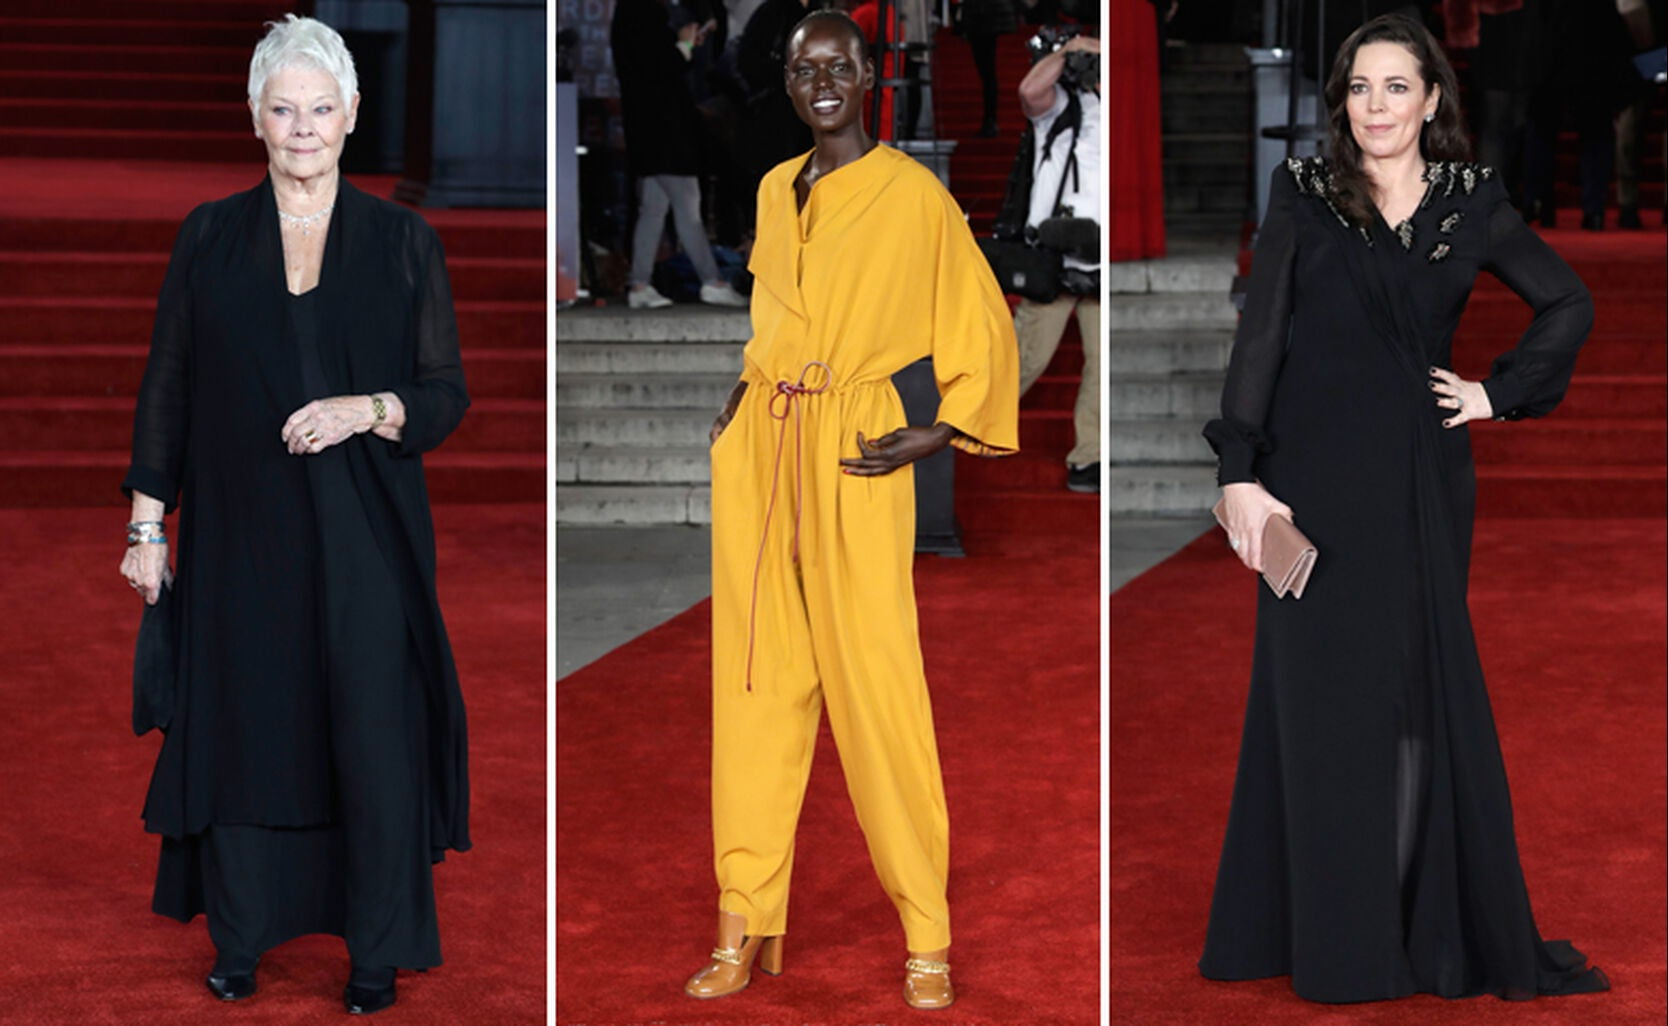 Judi Dench, Ajak Deng and Olivia Coleman